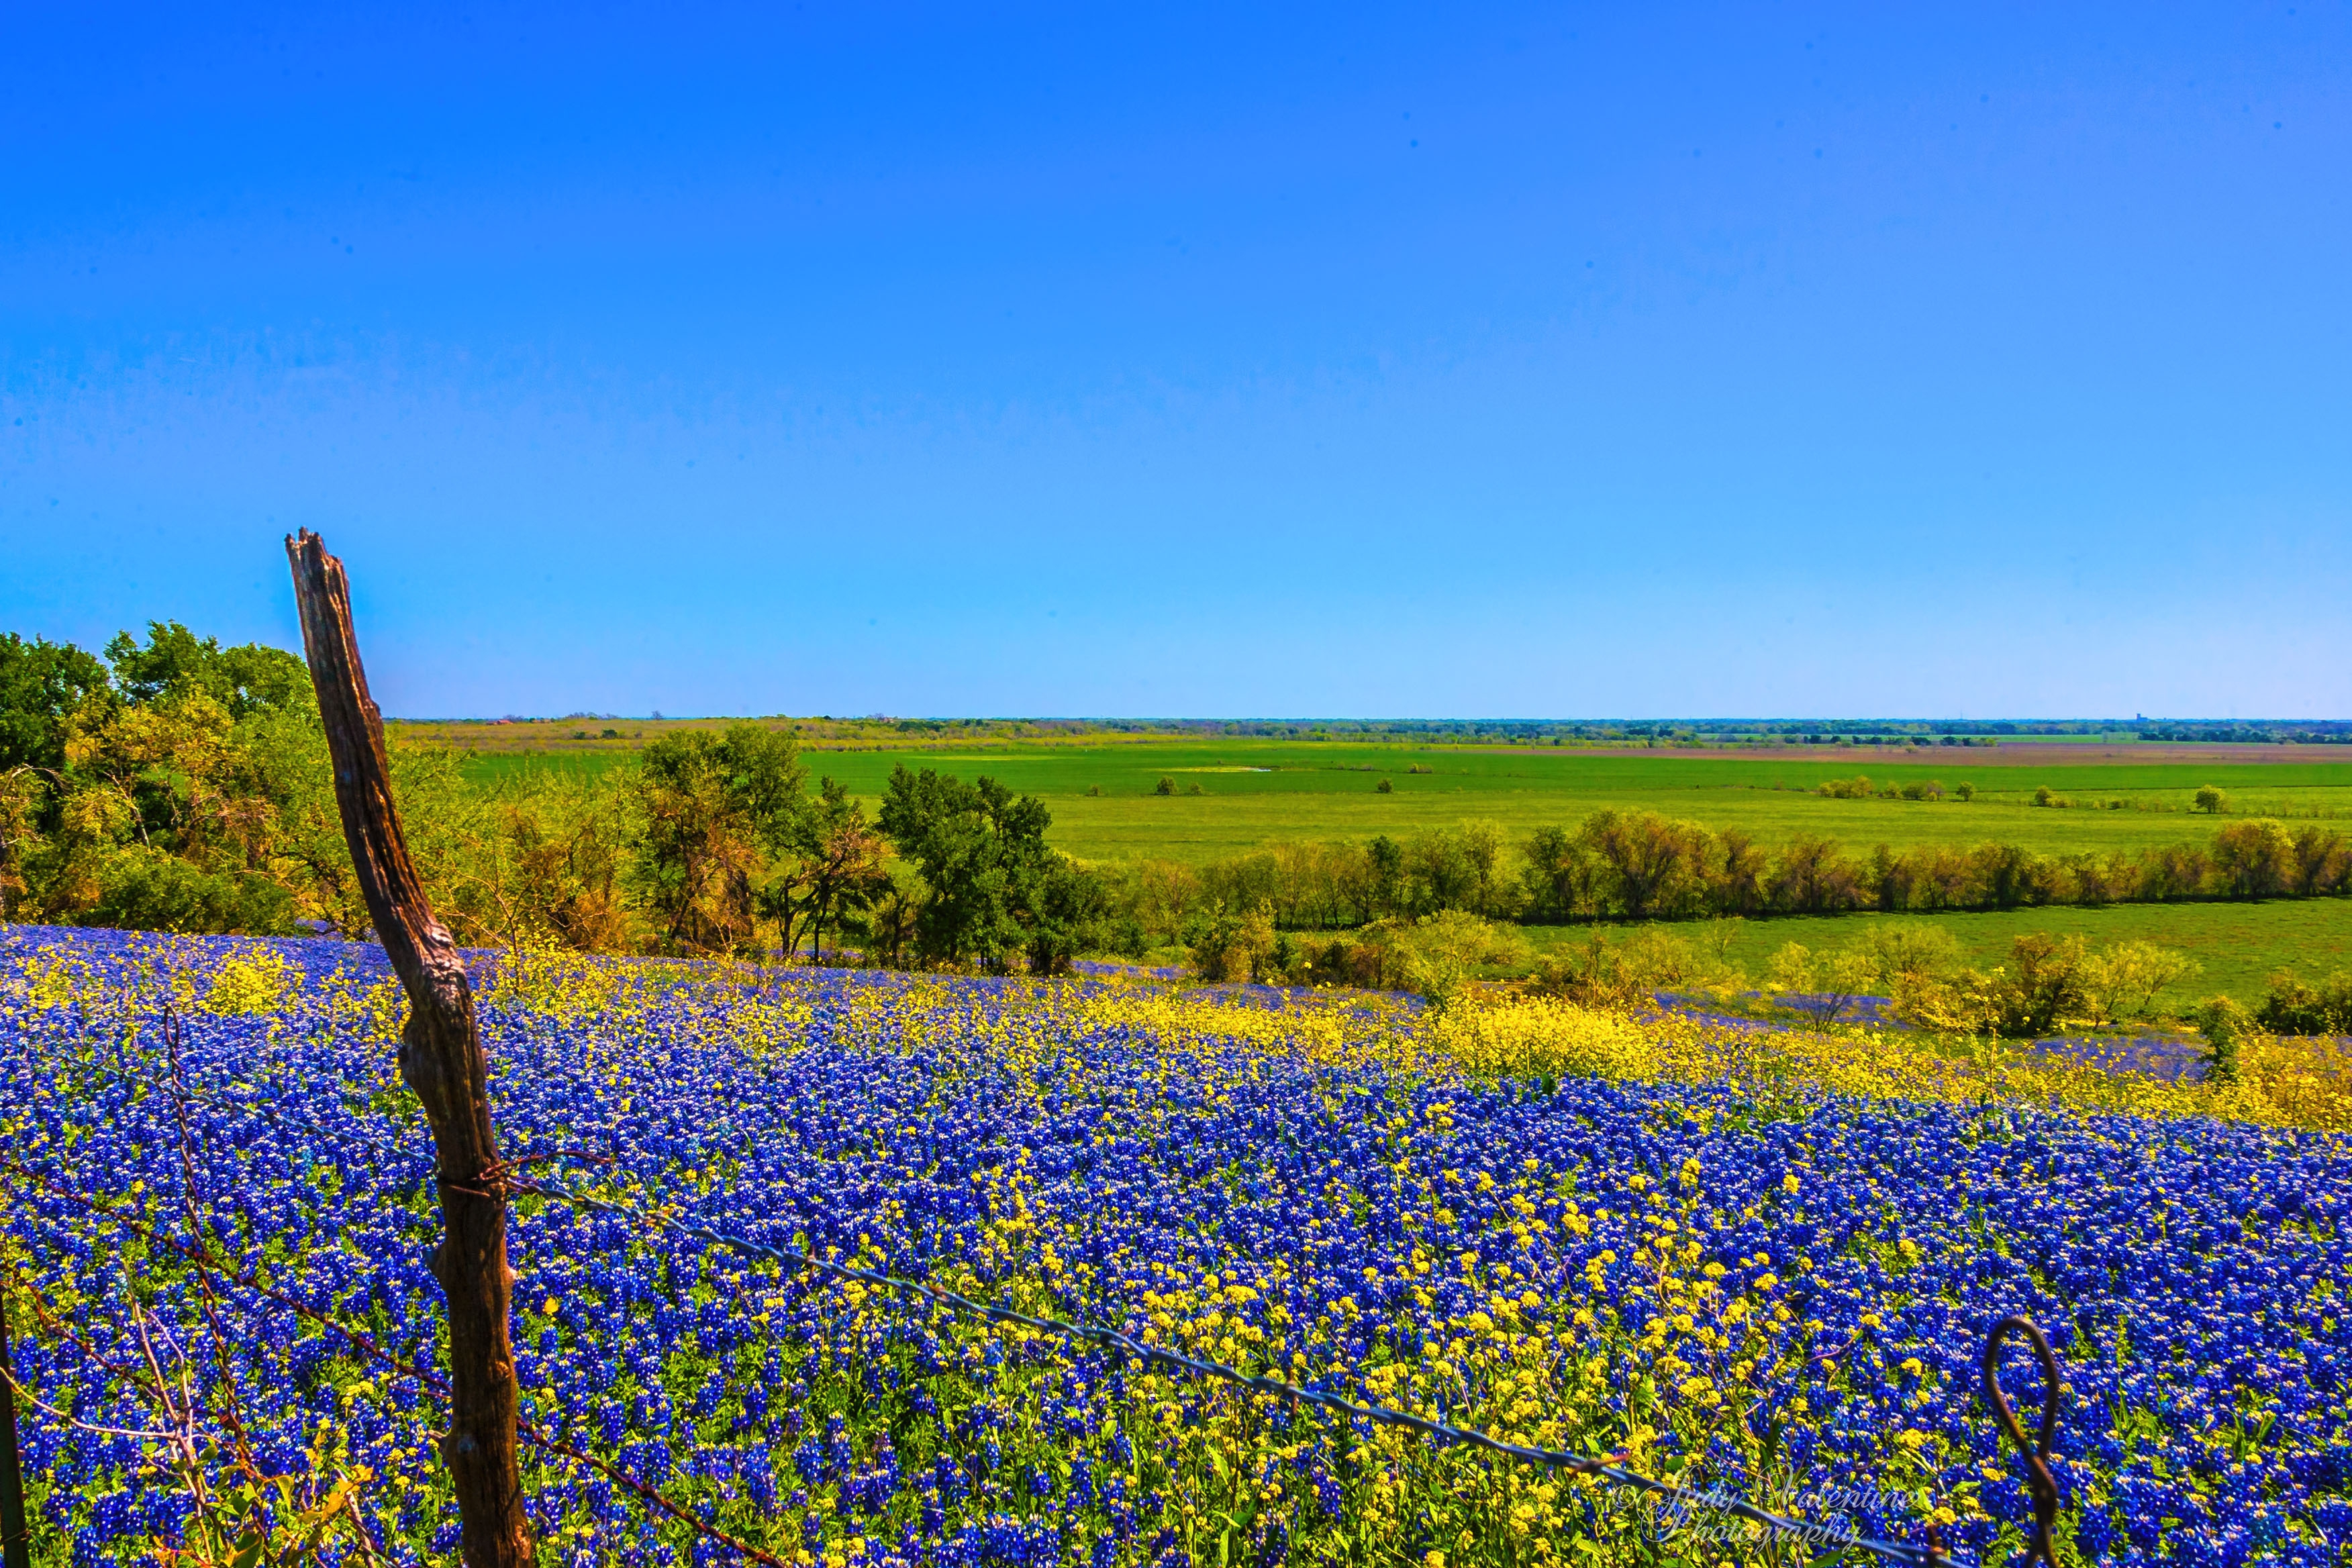 Bluebonnet Hd